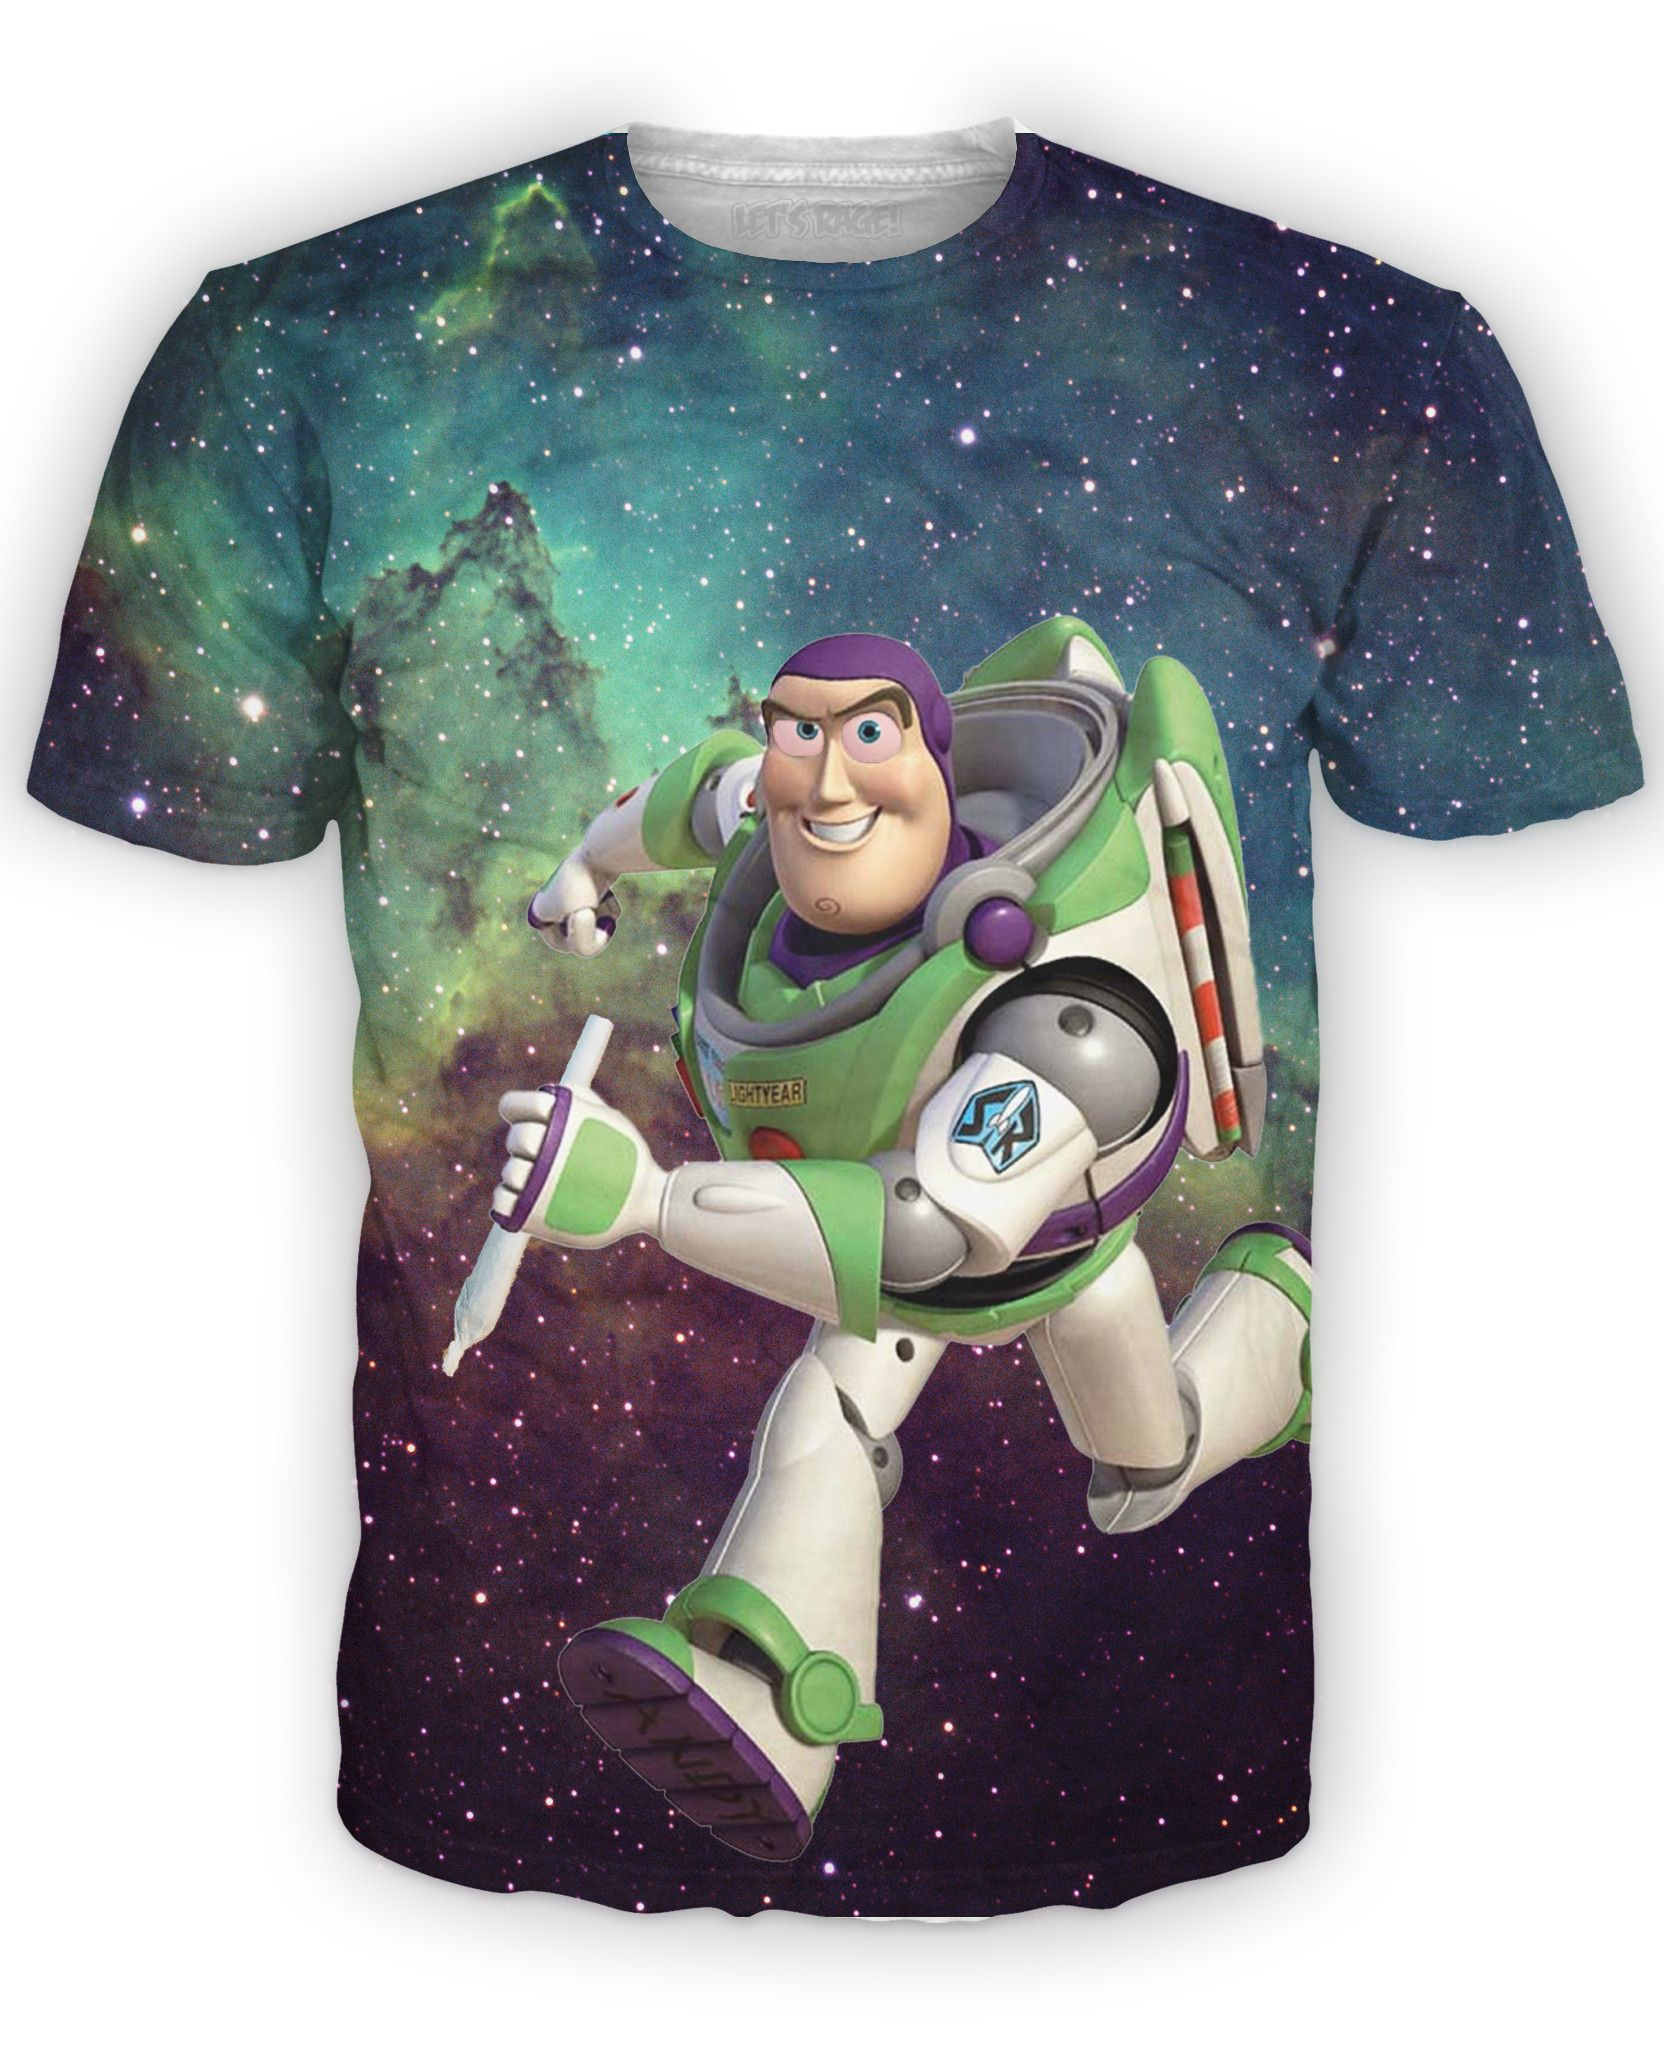 Buzz Lightyear T-Shirt – RageOn! - The World's Largest All-Over-Print Online Store